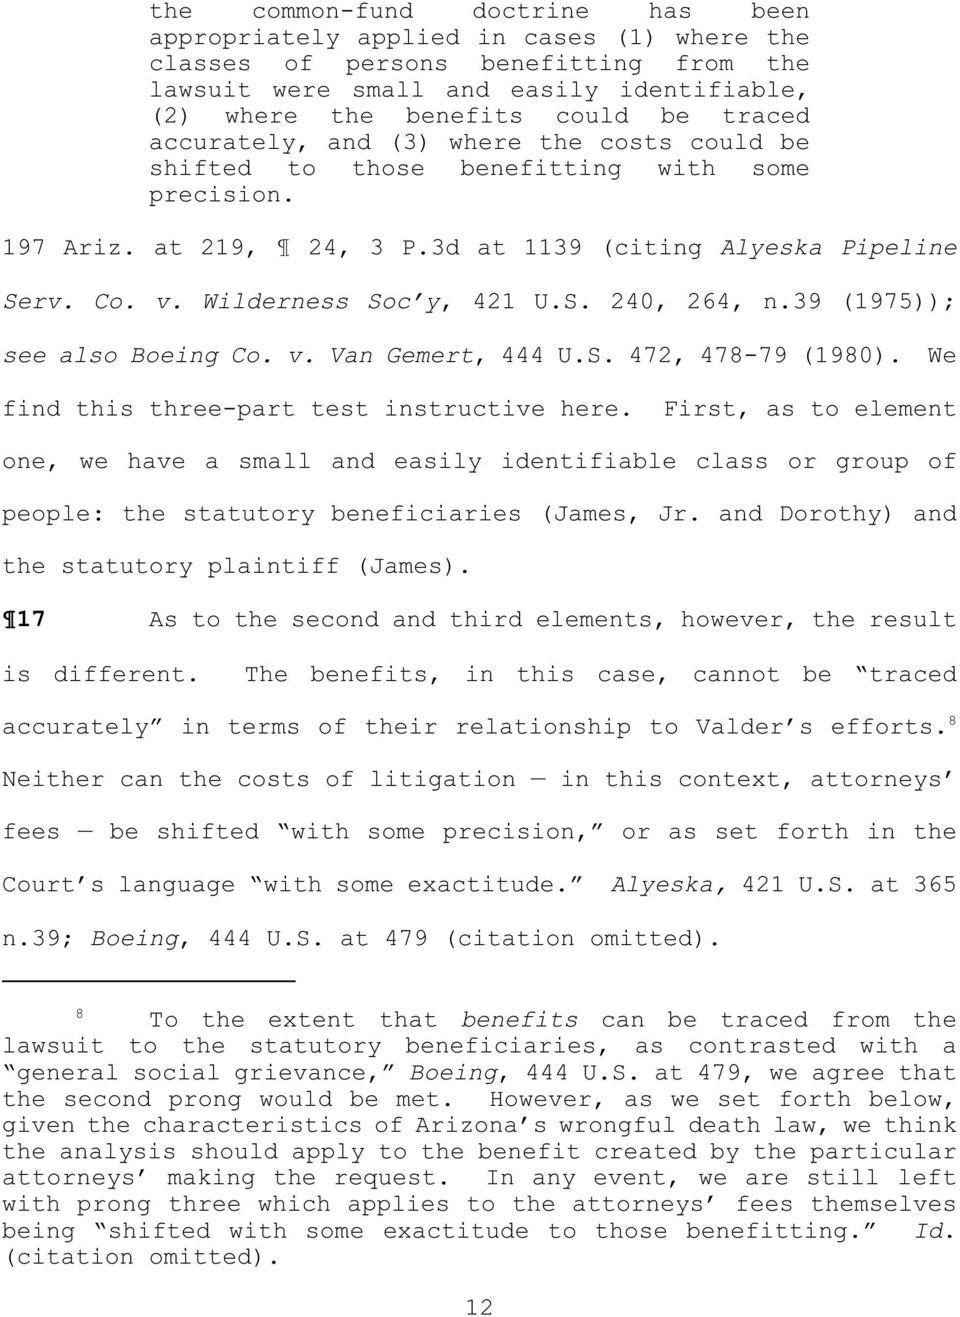 39 (1975; see also Boeing Co. v. Van Gemert, 444 U.S. 472, 478-79 (1980. We find this three-part test instructive here.